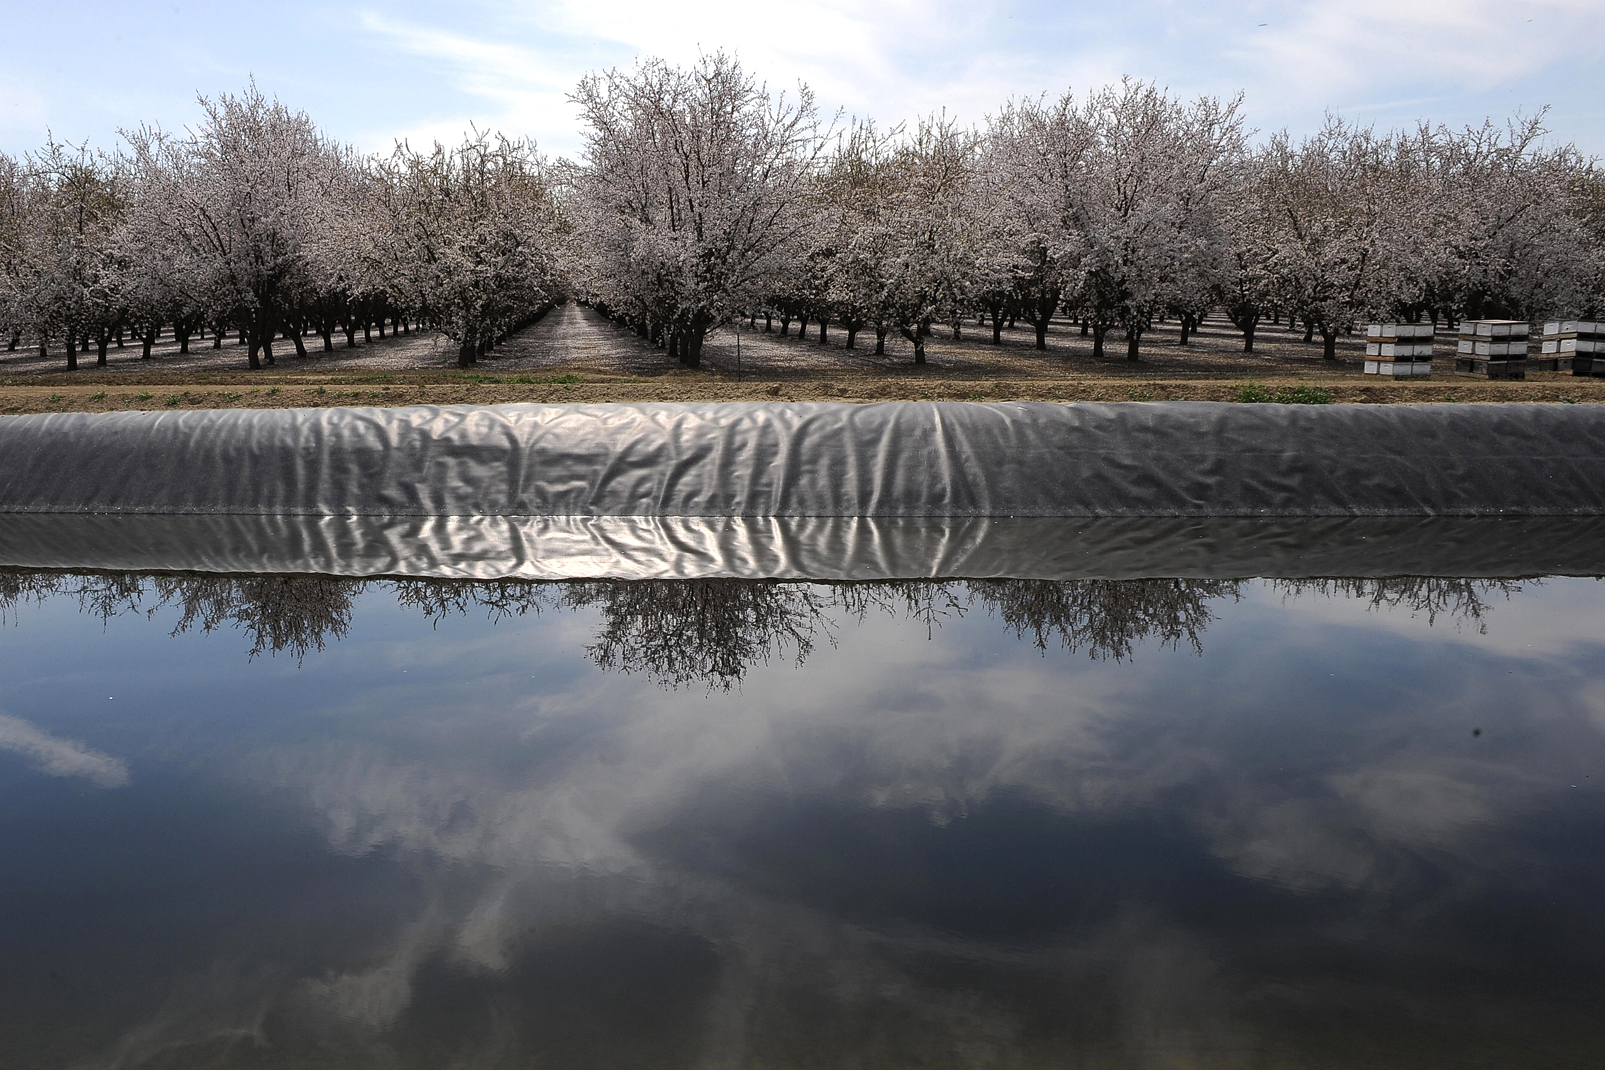 A field of almond trees is reflected in an irrigation canal in Firebaugh, Calif., in the San Joaquin Valley in 2009. The Almond Board of California says that in the past two decades, the industry has reduced its water consumption by 33 percent per pound of almonds produced. Photo: Robyn Beck/AFP/Getty Images